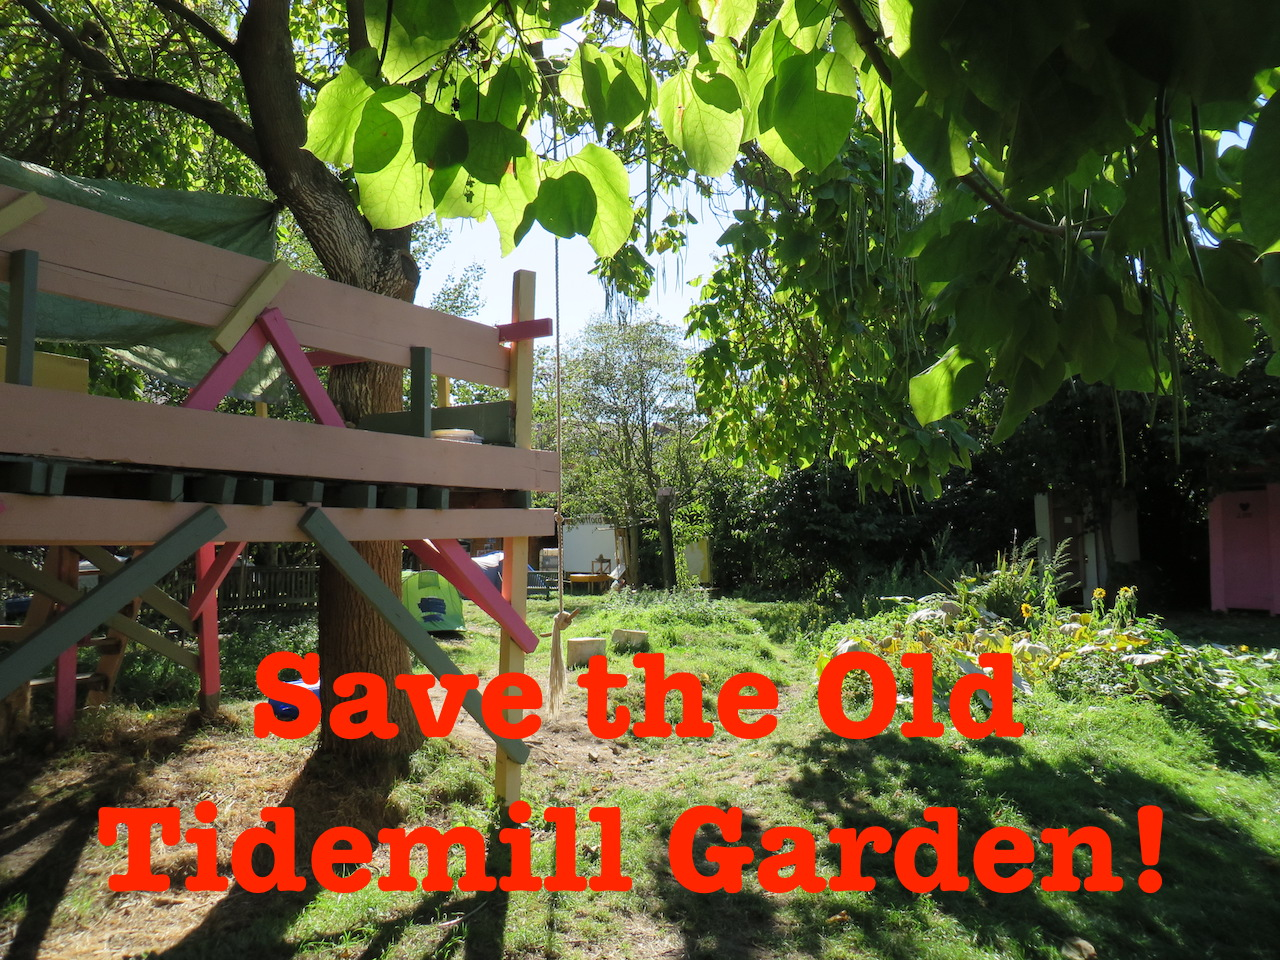 A photo of the Old Tidemill Wildlife Garden, which campaigners have occupied to prevent its destruction by Lewisham Council and Peabody, photographed on September 16, 2018 (Photo: Andy Worthington).